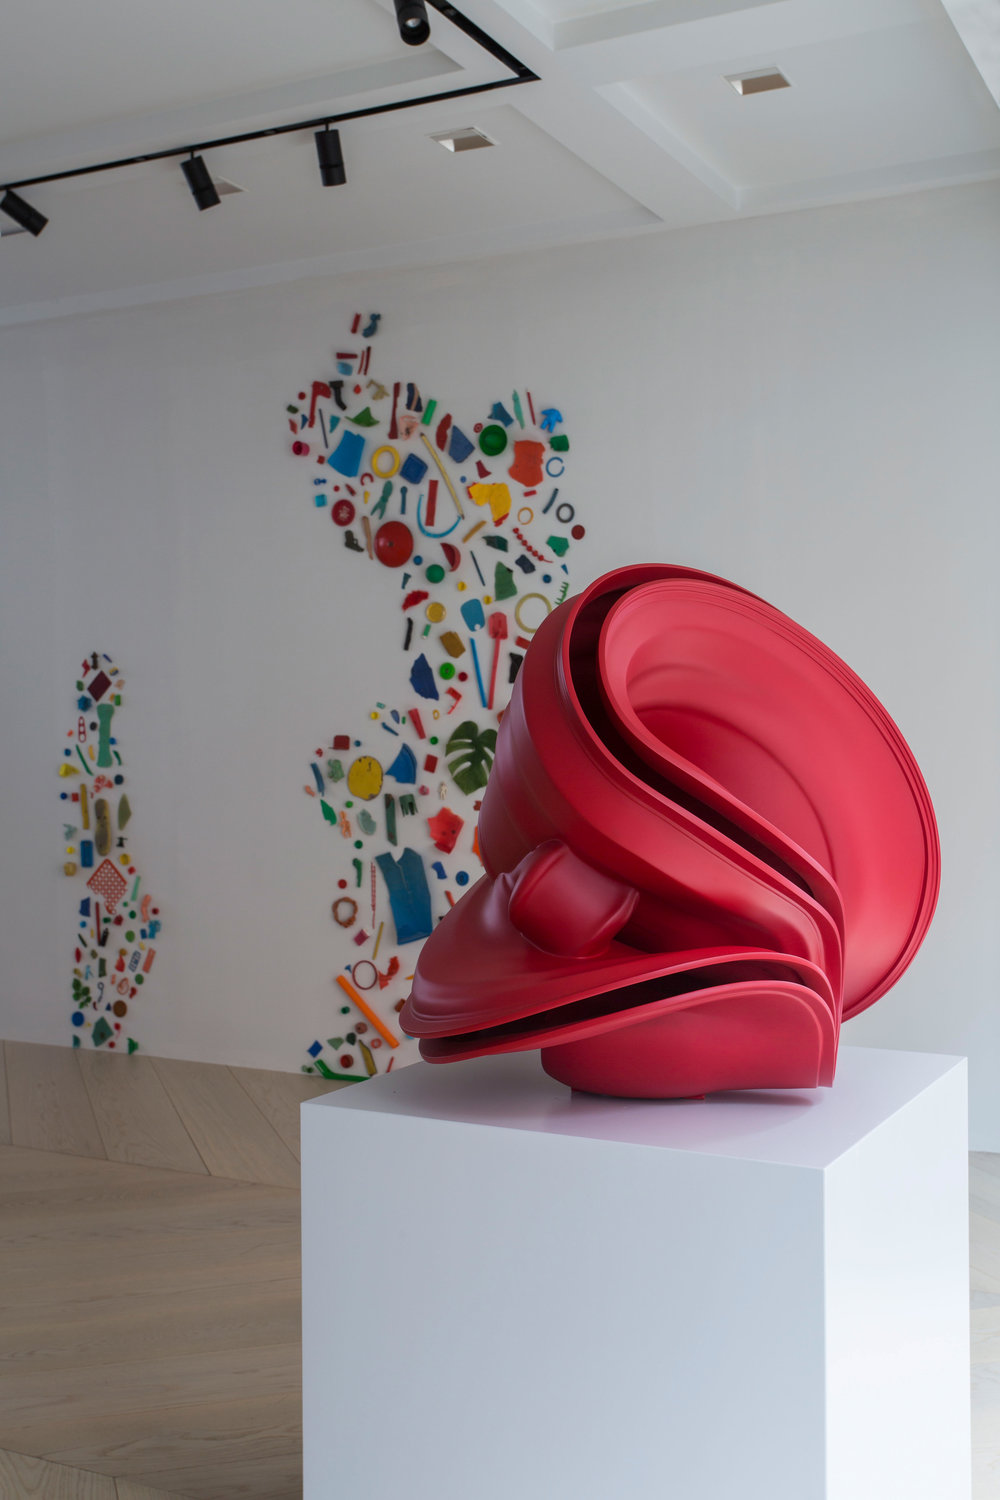 Tony Cragg Primary Colours_Installation view 13.jpg